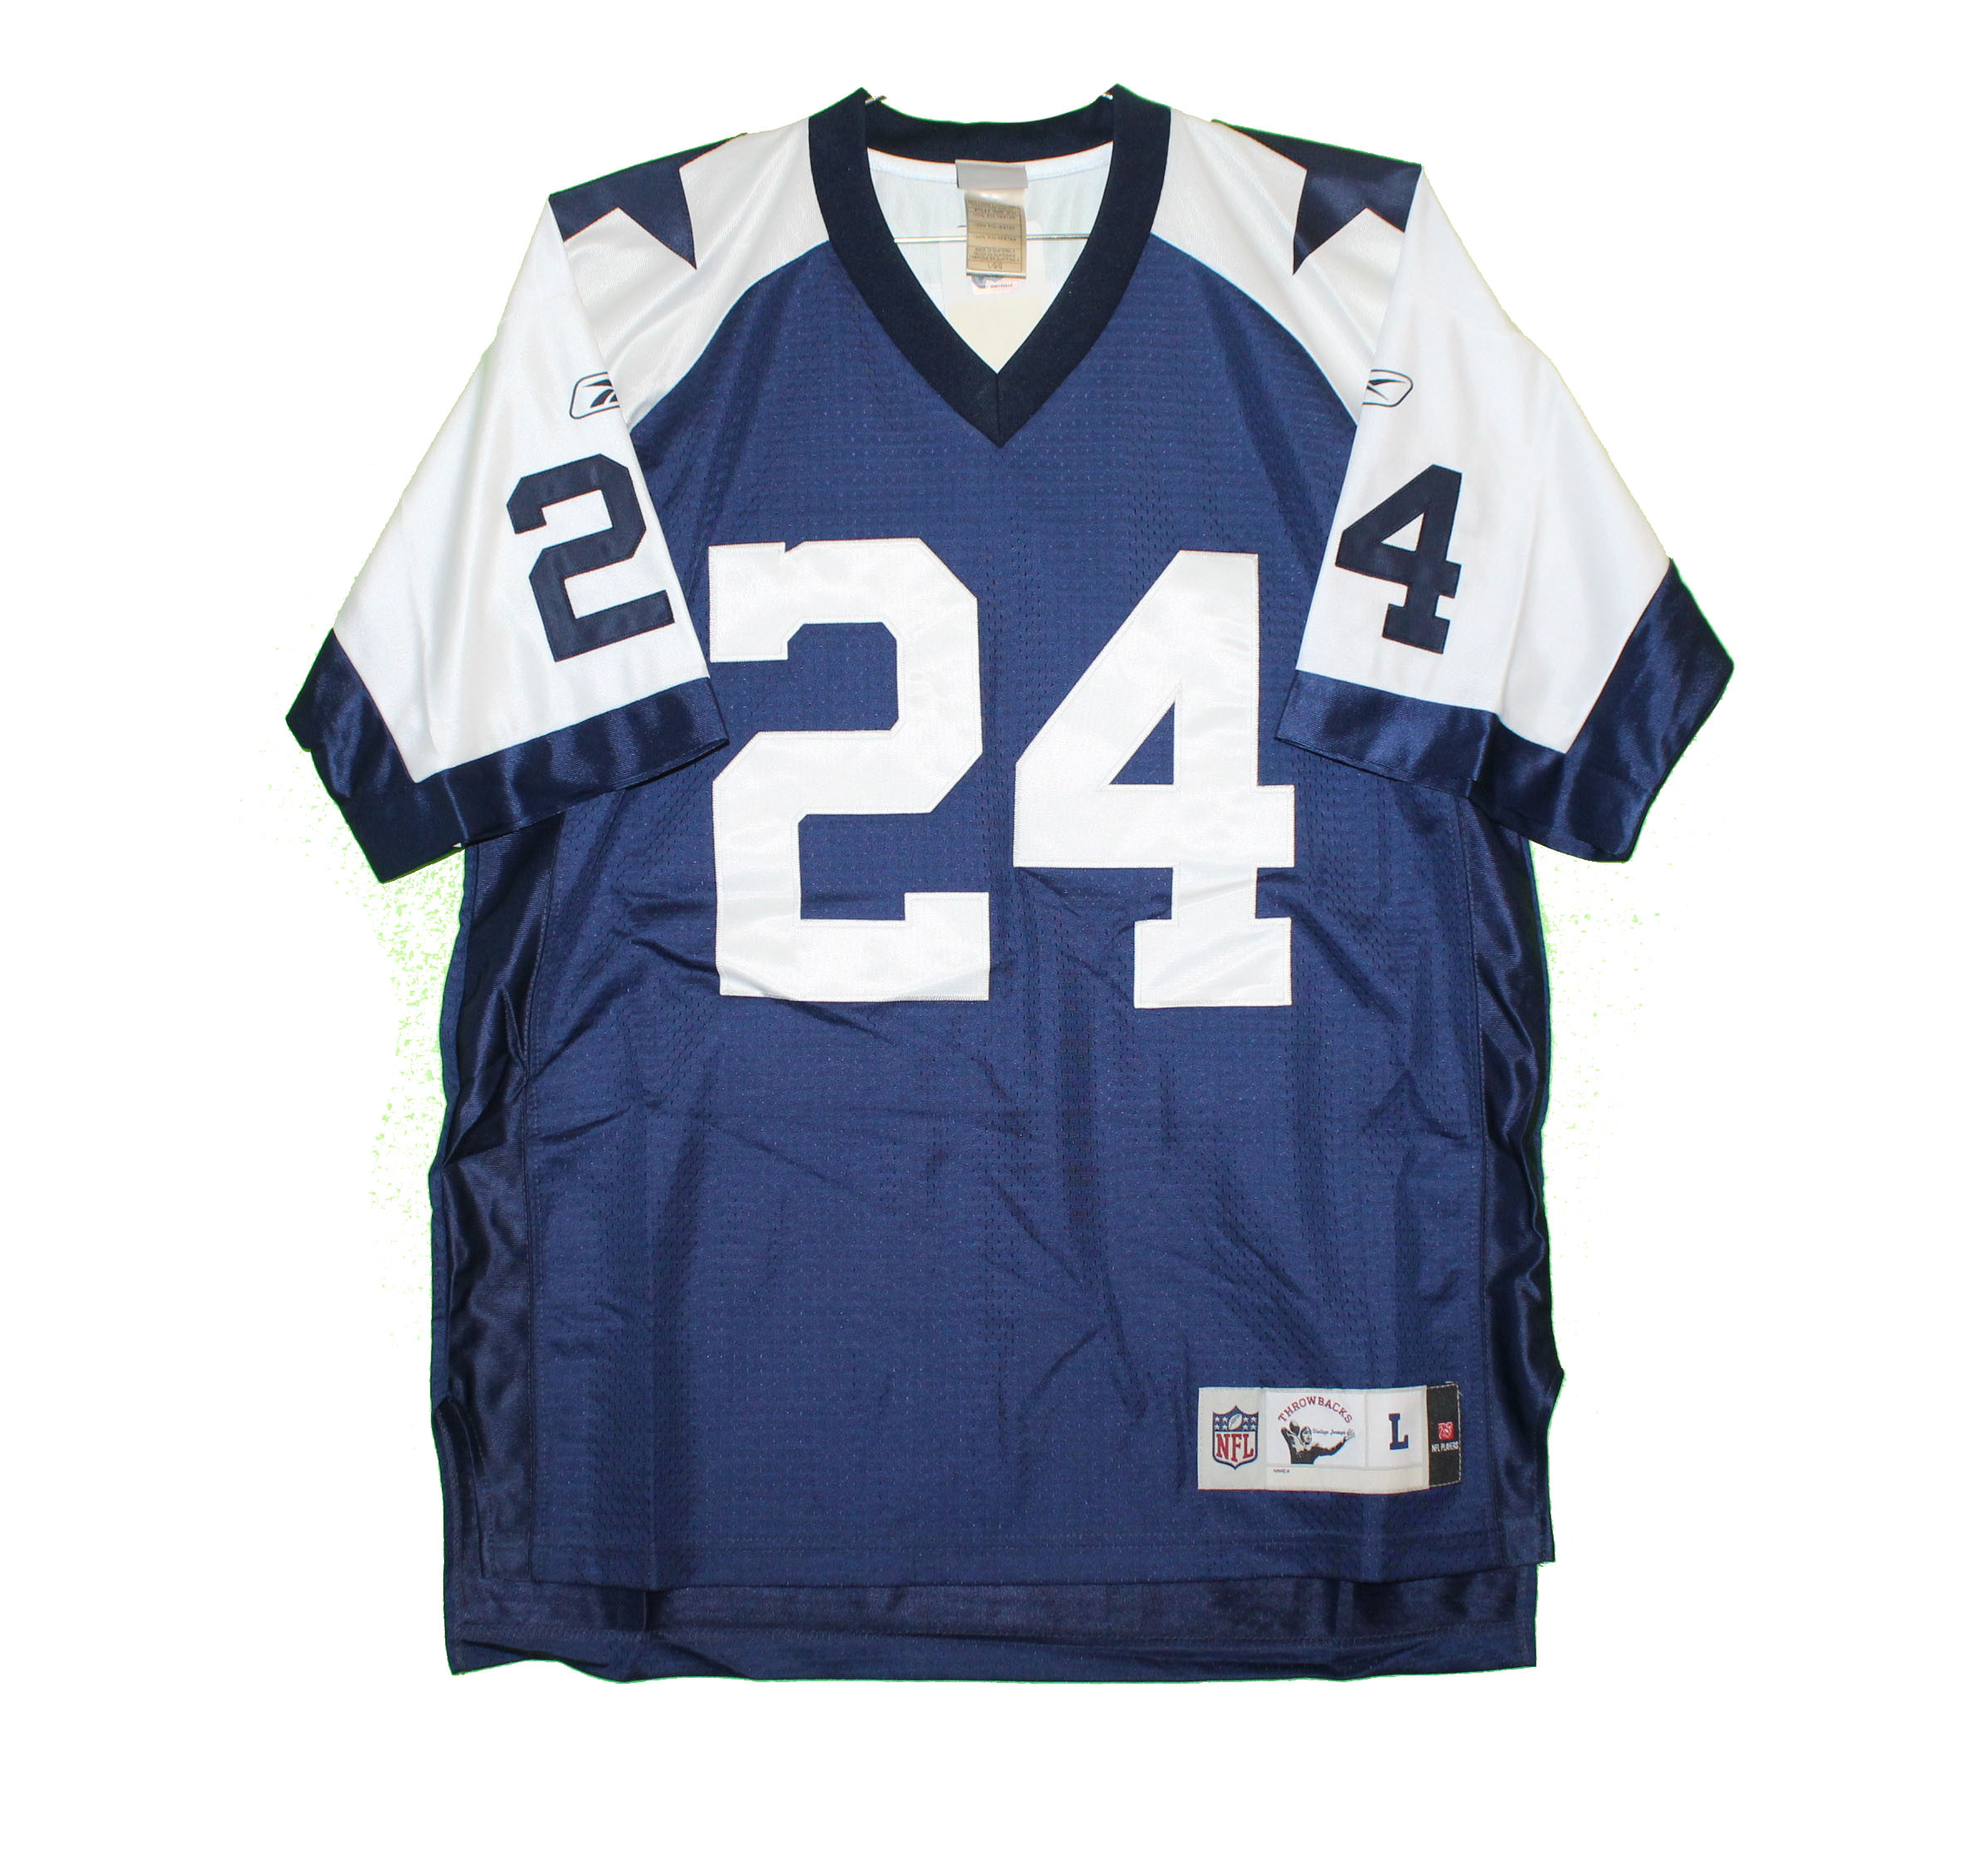 online retailer 8776d c85b1 Dallas Cowboys - Marion Barber #24 Two-Tone Vintage Throwback Jersey